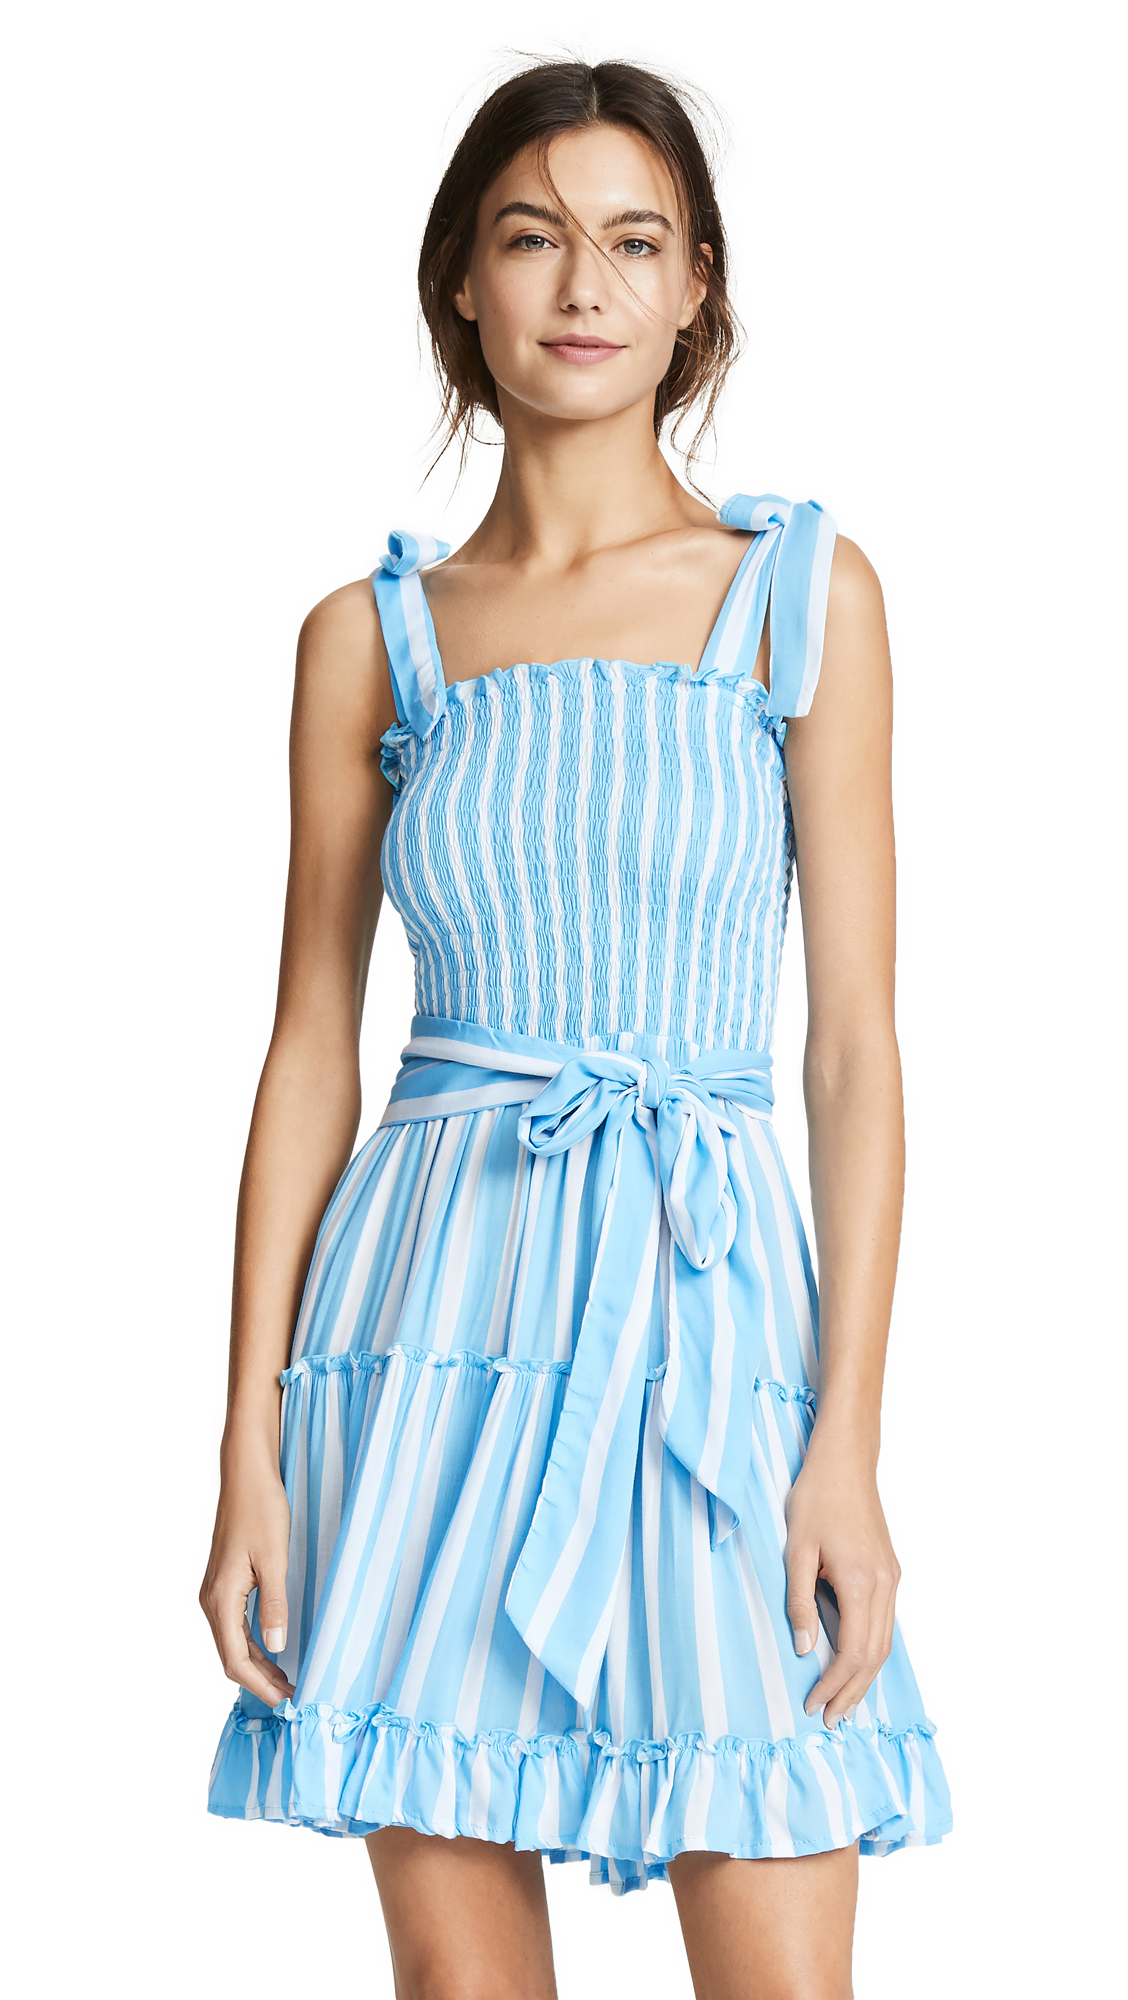 COOL CHANGE Reagan Dress in Toiny Stripe